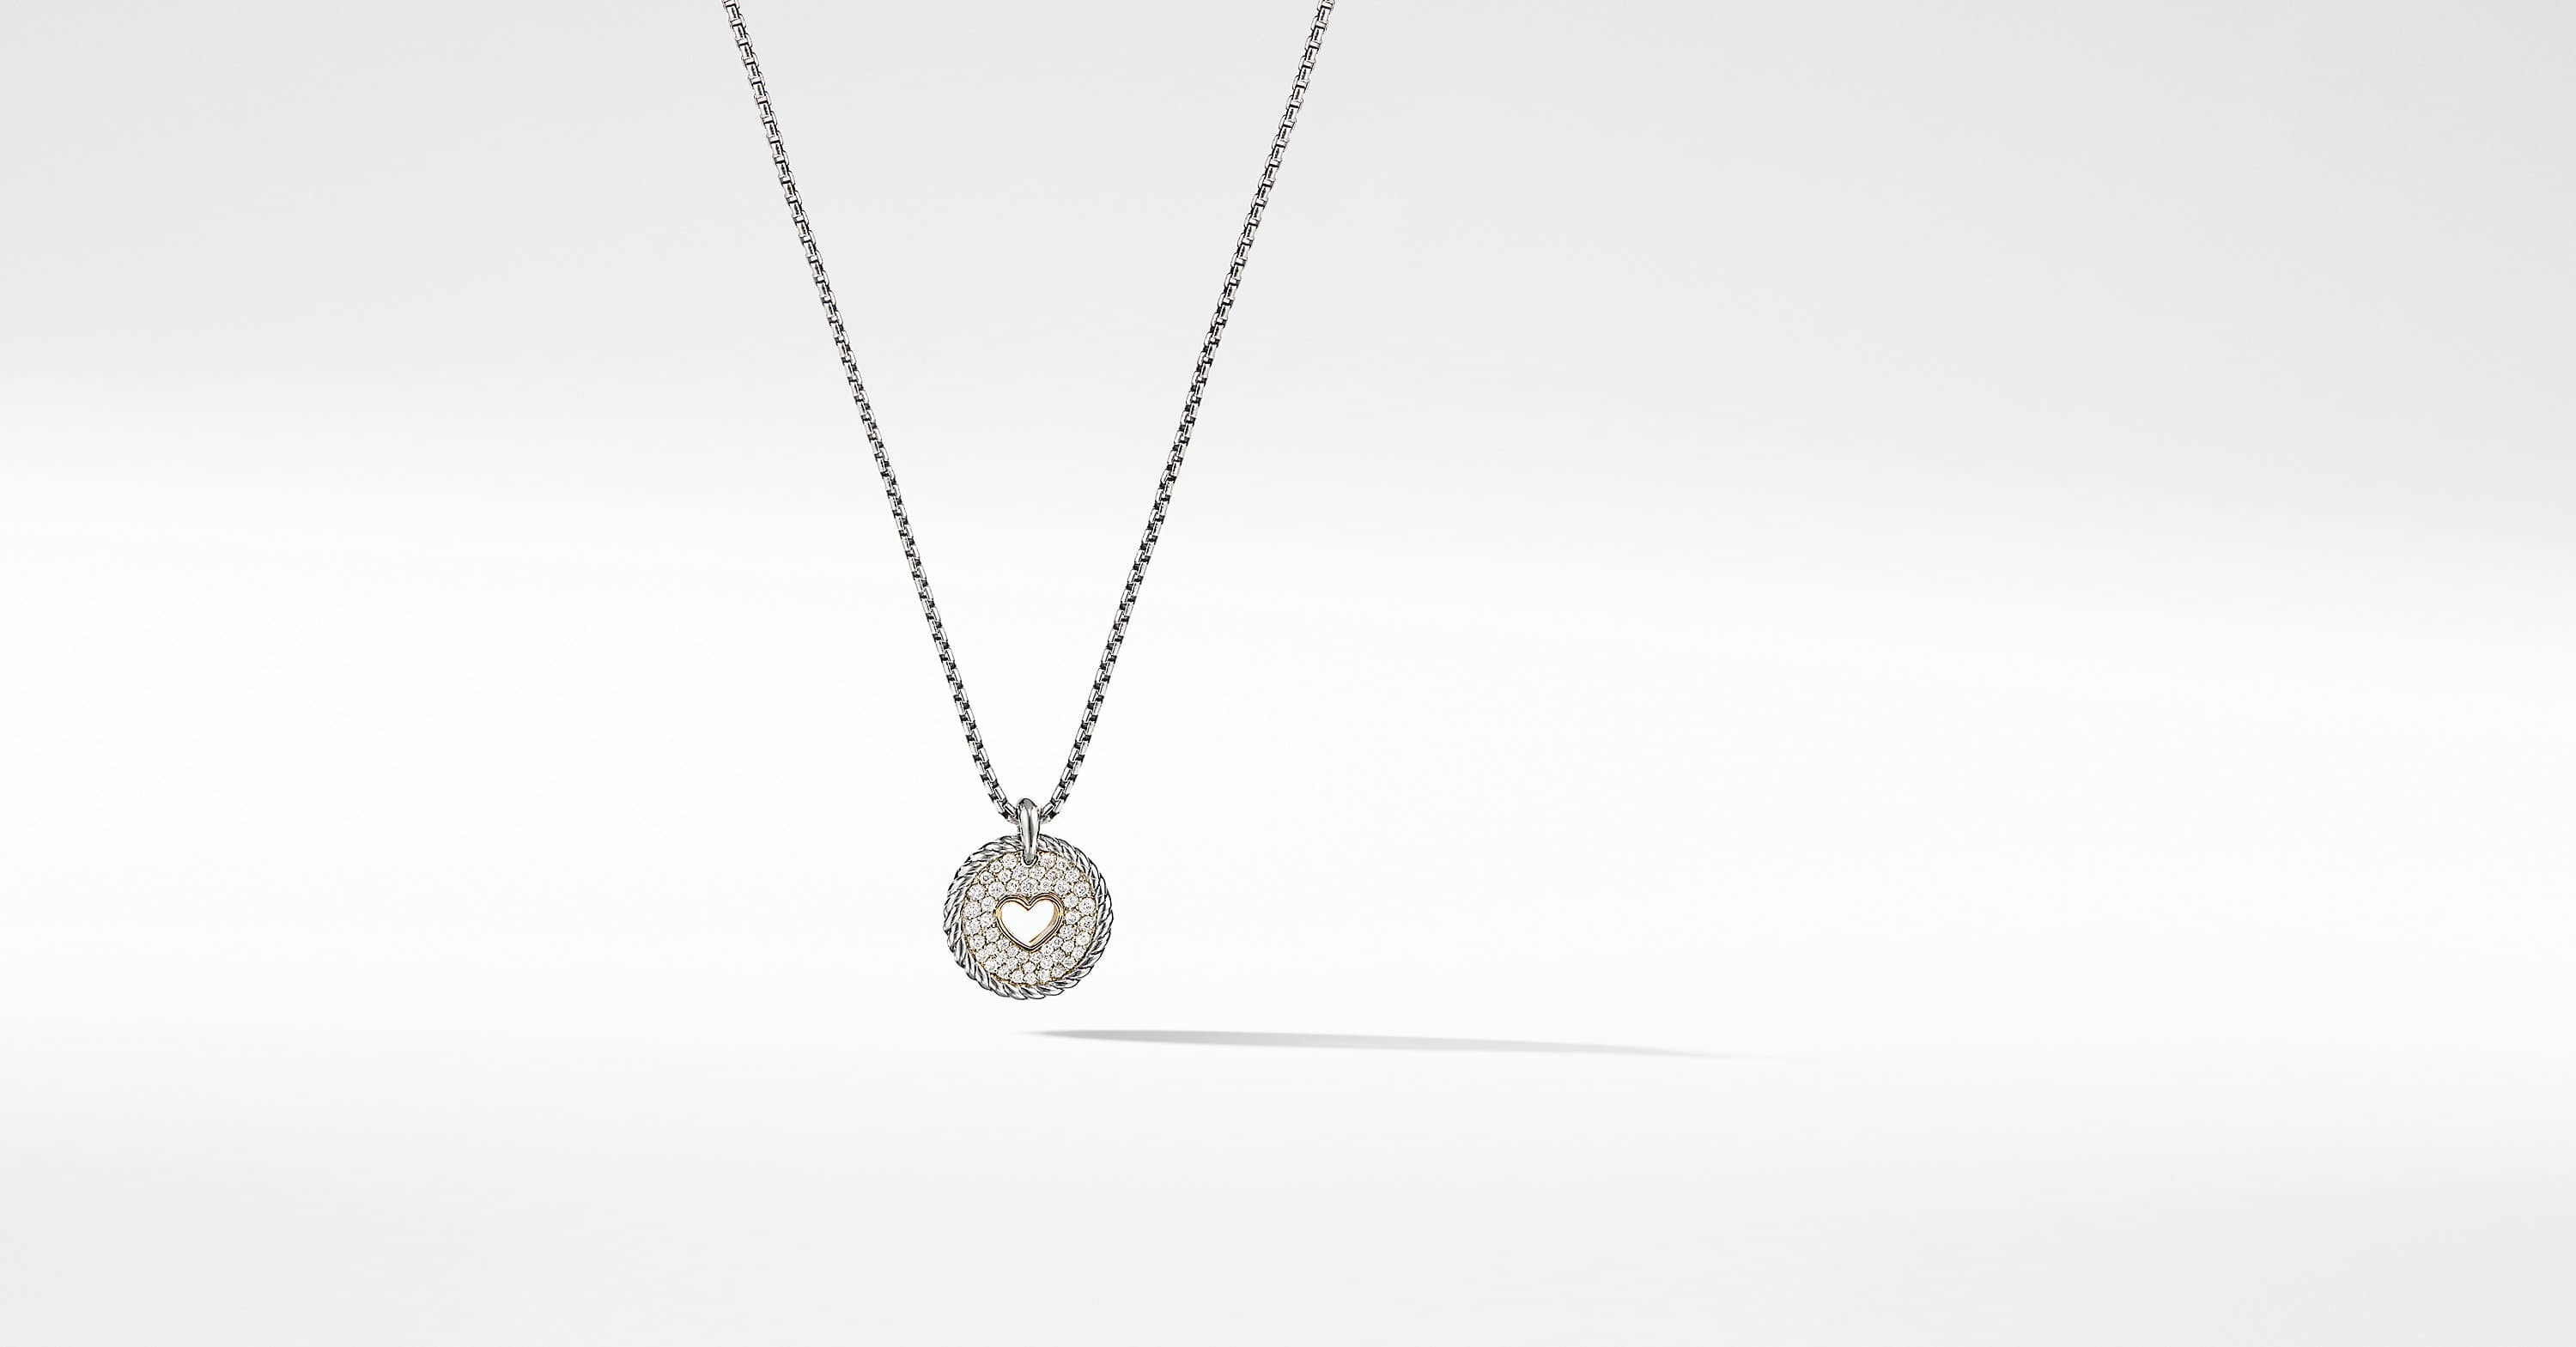 Petite Pave Heart Charm Necklace with Diamonds with 18K Gold